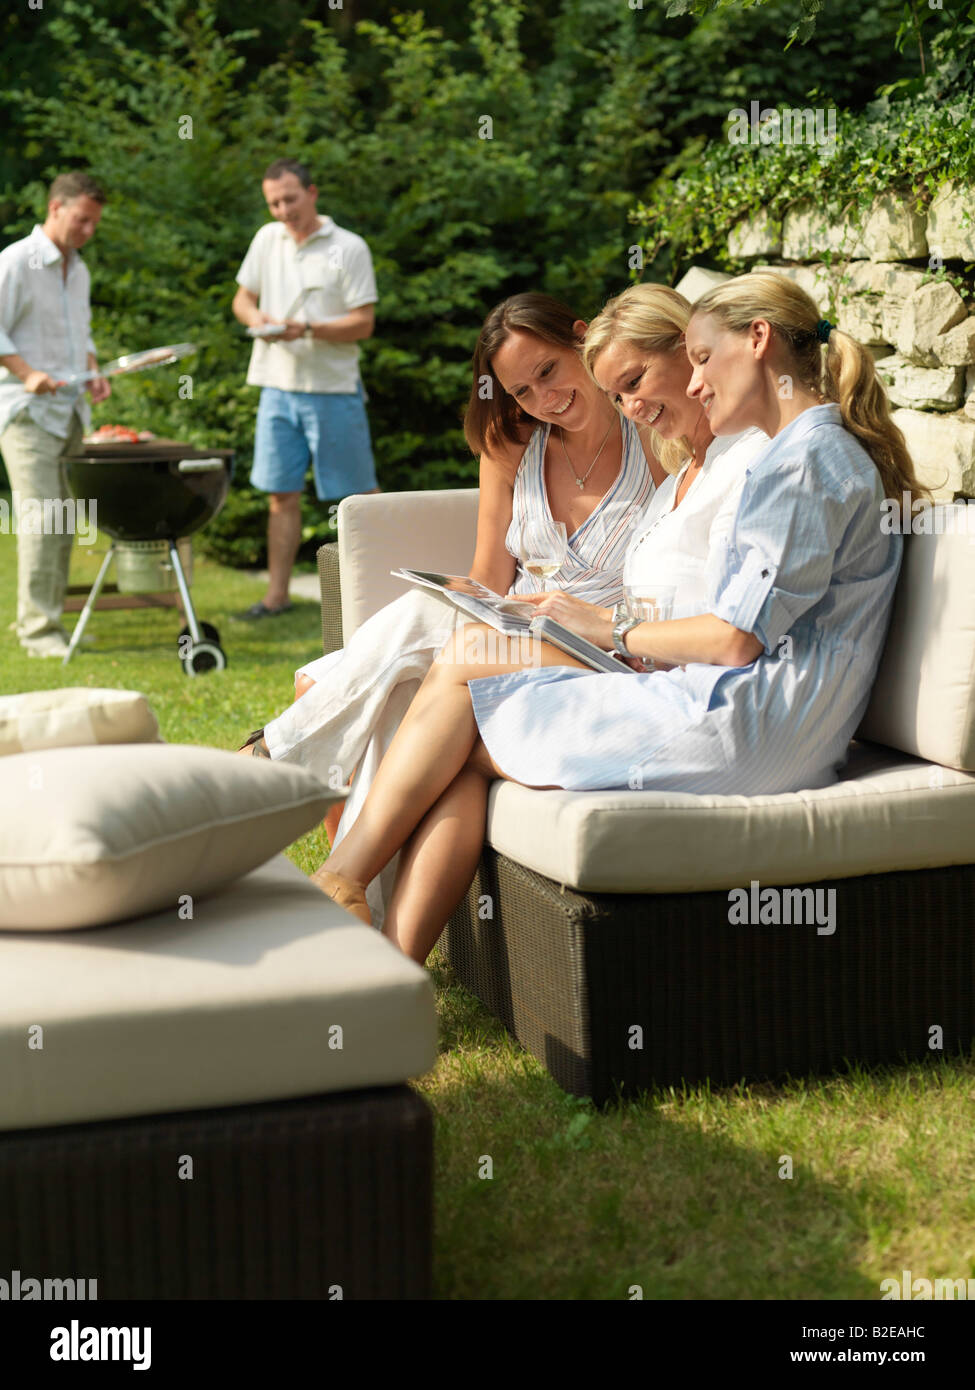 Group of women looking at photo album - Stock Image